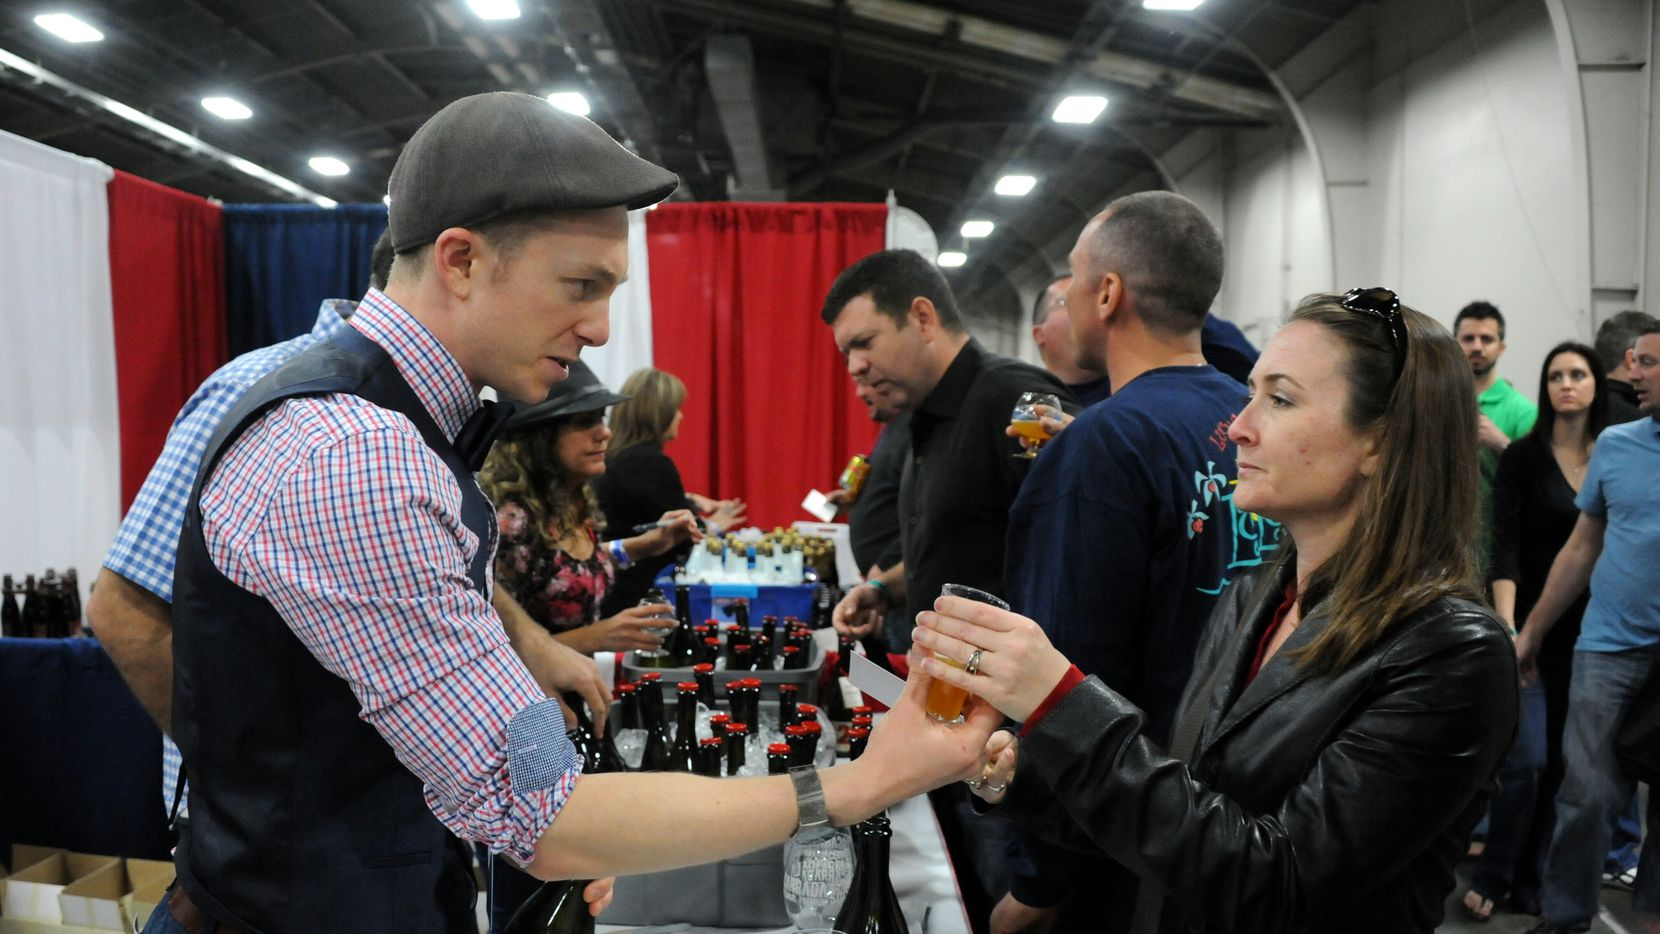 Austin Calr serves a La Socarrada beer to guest Carisa Armstrong at the Big Texas Beer Fest at Fair Park in Dallas, TX on April 5, 2014.